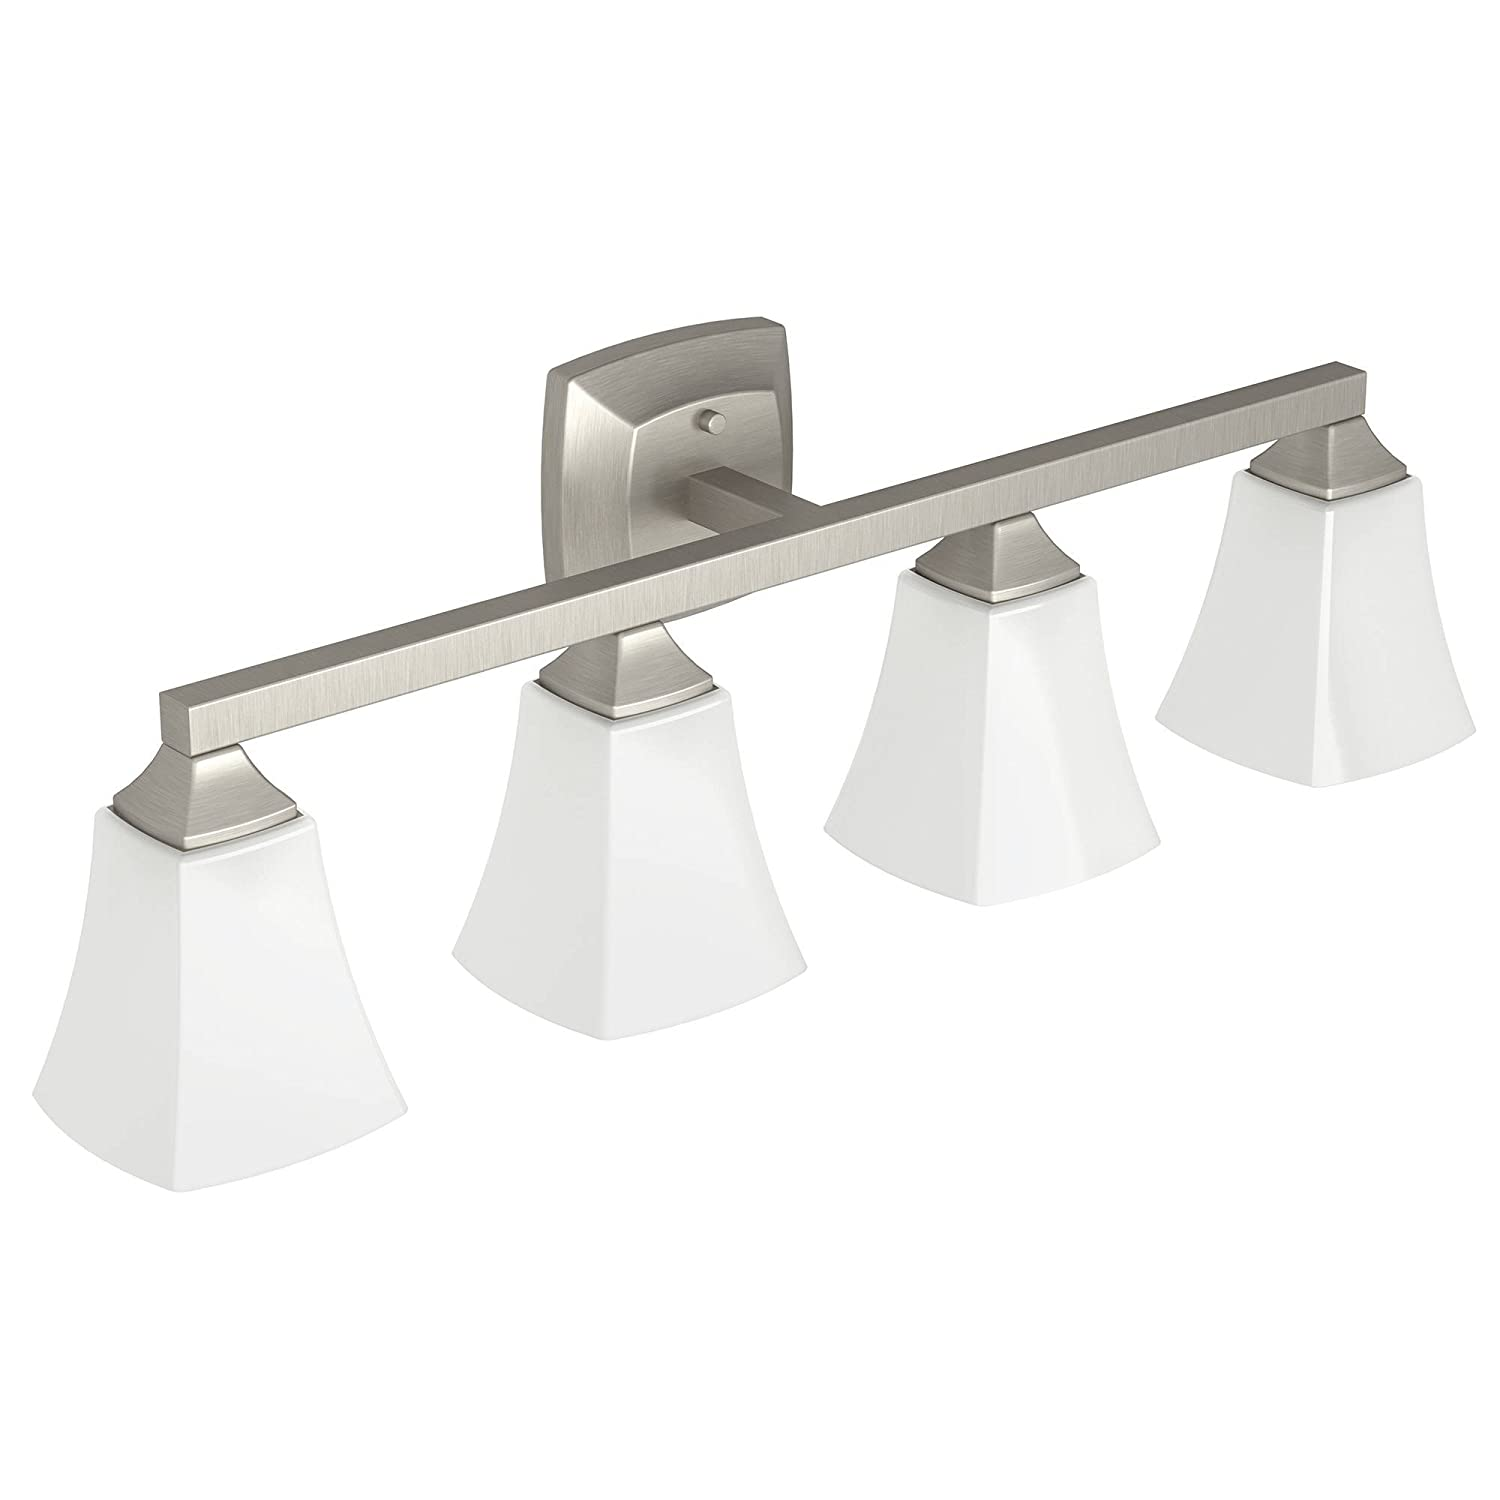 Moen YB5164BN Voss Bath Lighting Four Globe, Brushed Nickel     Amazon.com